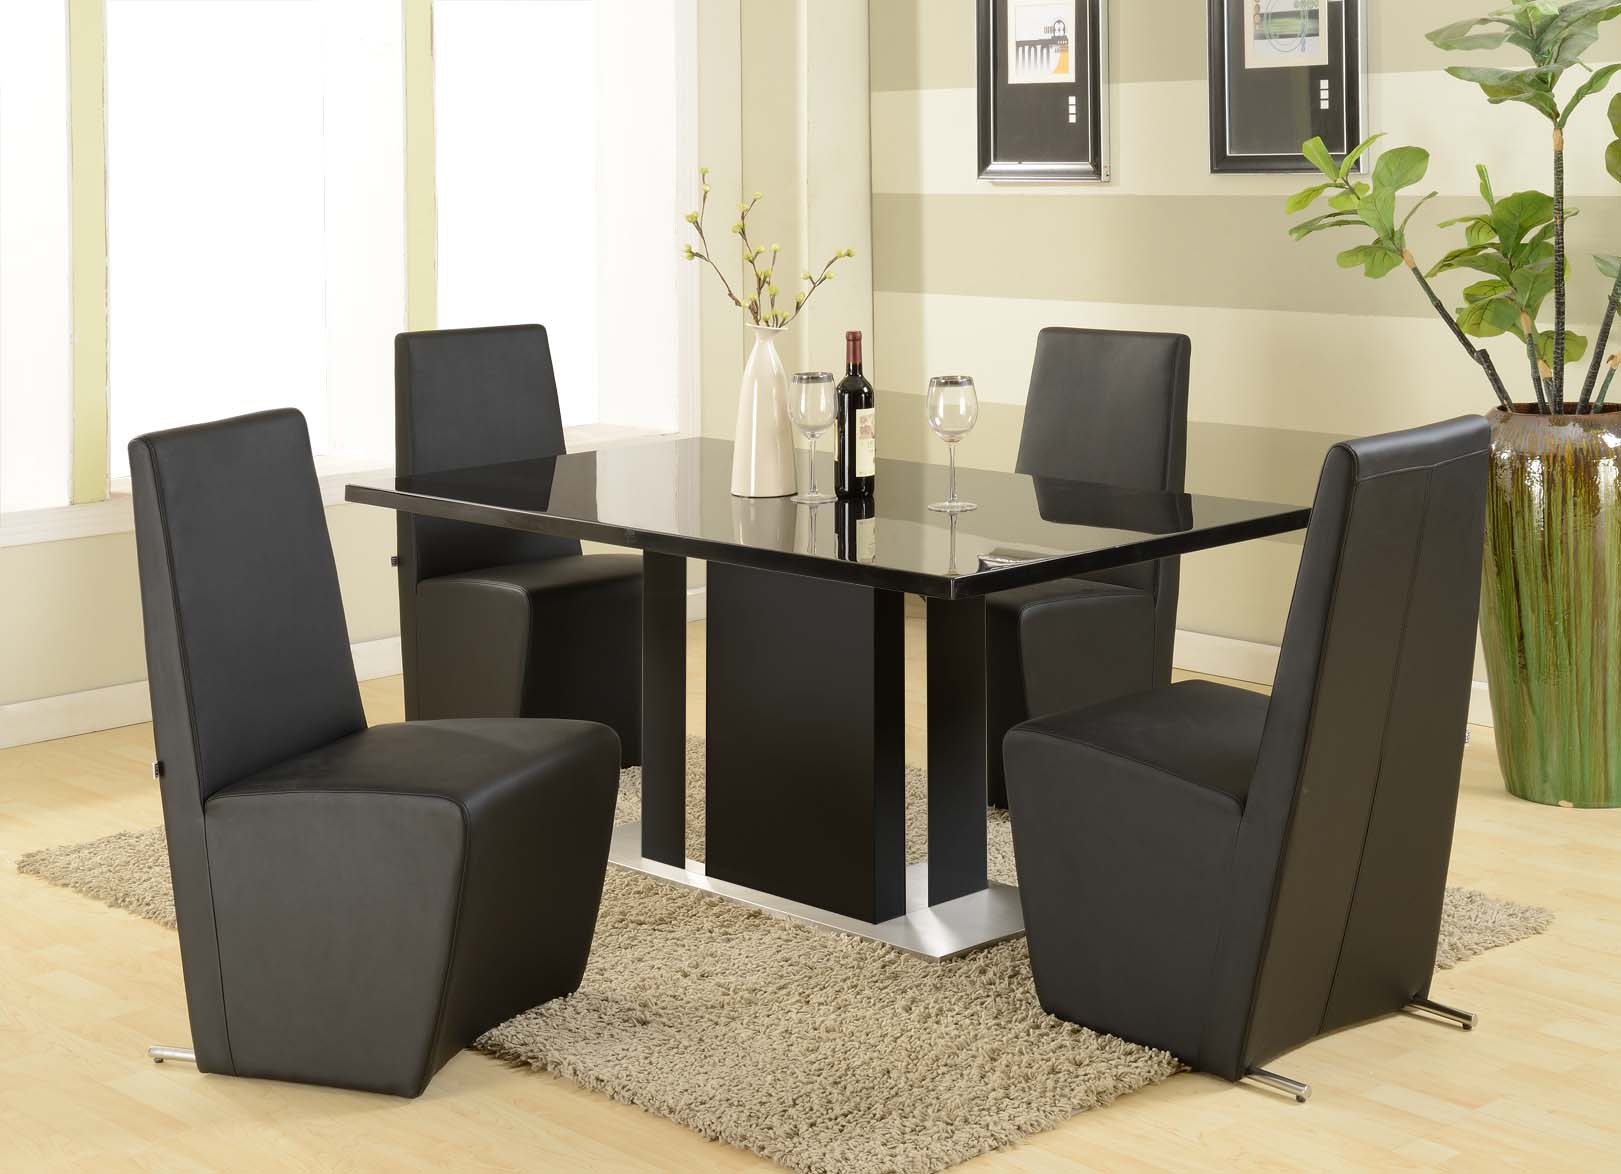 Outstanding Dining Table and Chair Sets 1621 x 1174 · 155 kB · jpeg